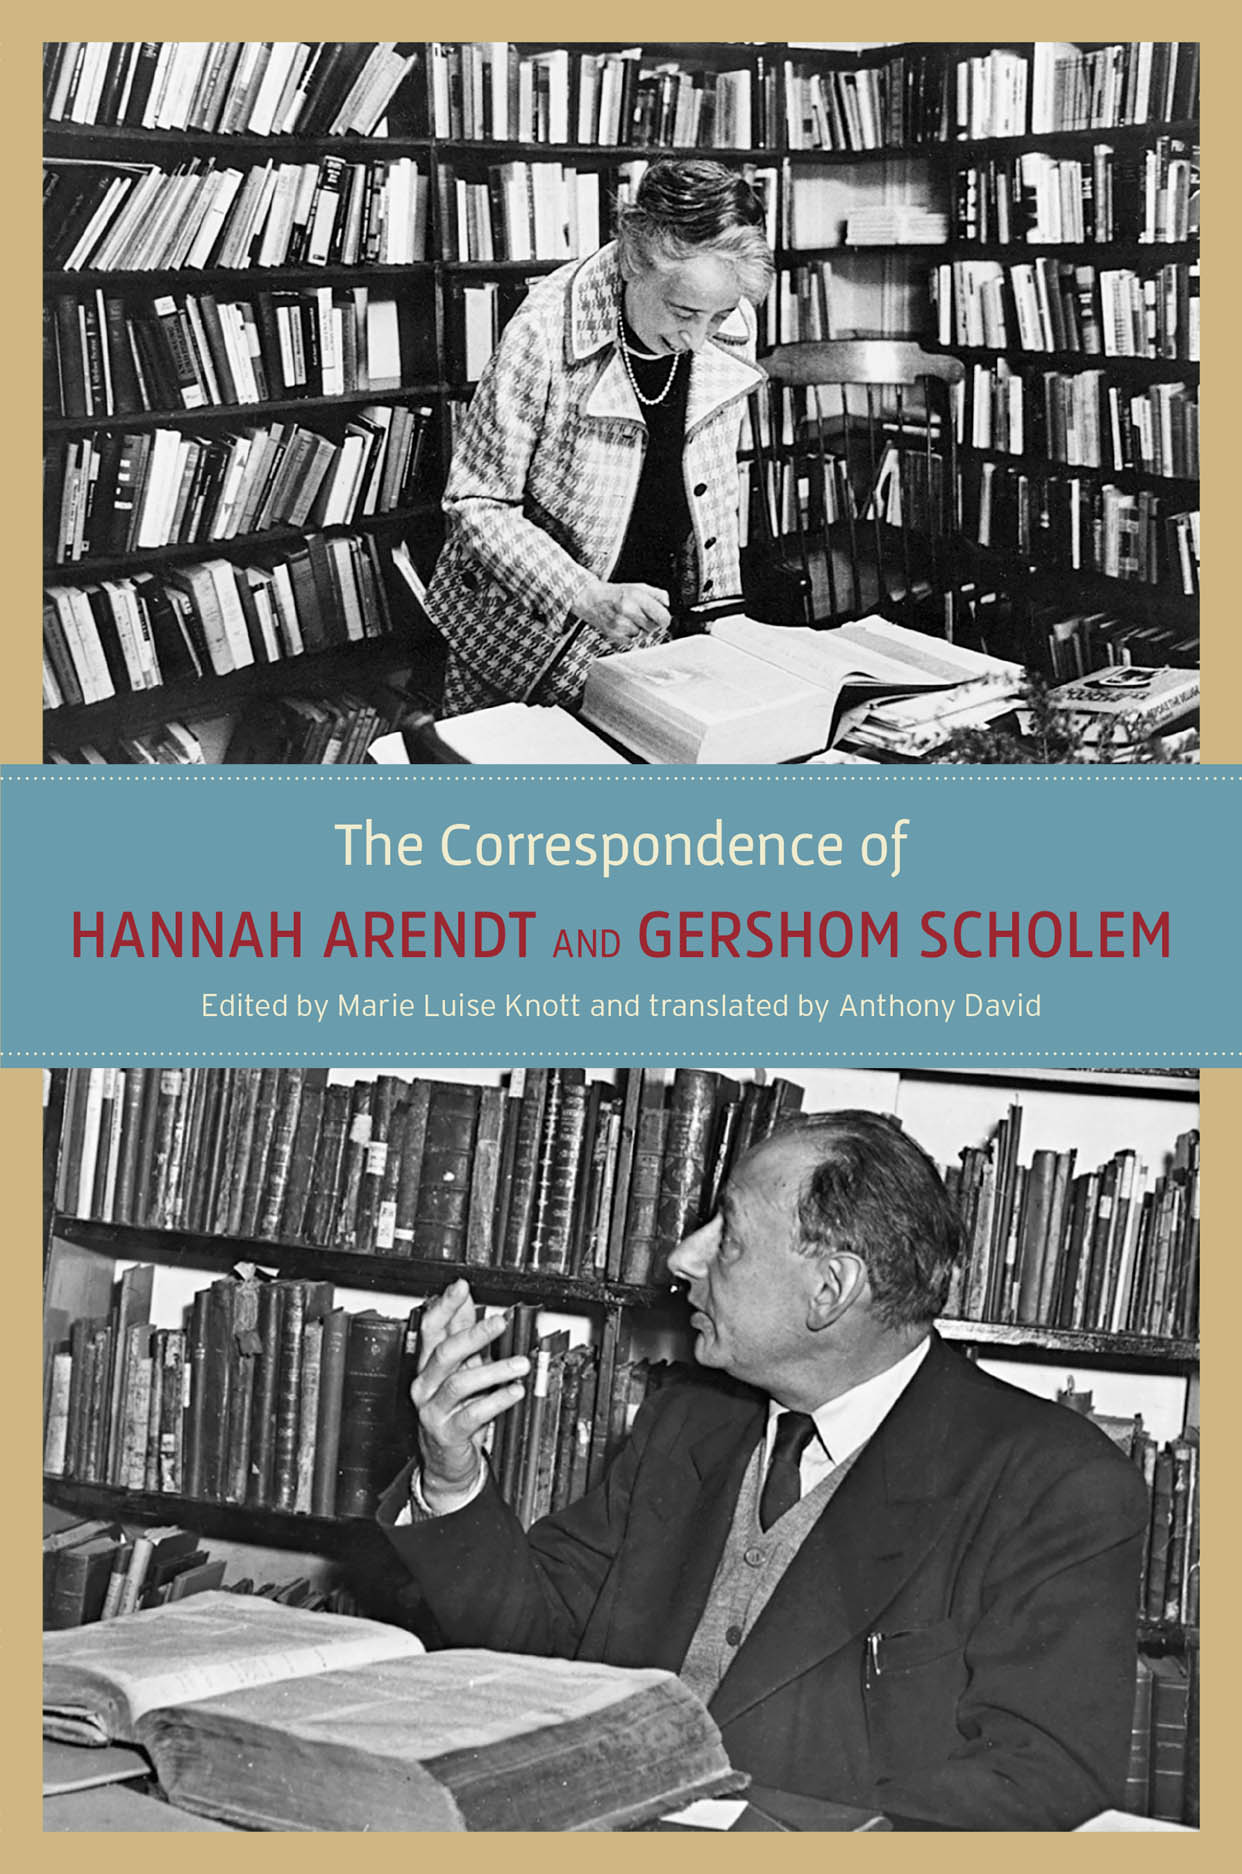 The Correspondence of Hannah Arendt and Gershom Scholem Book Cover